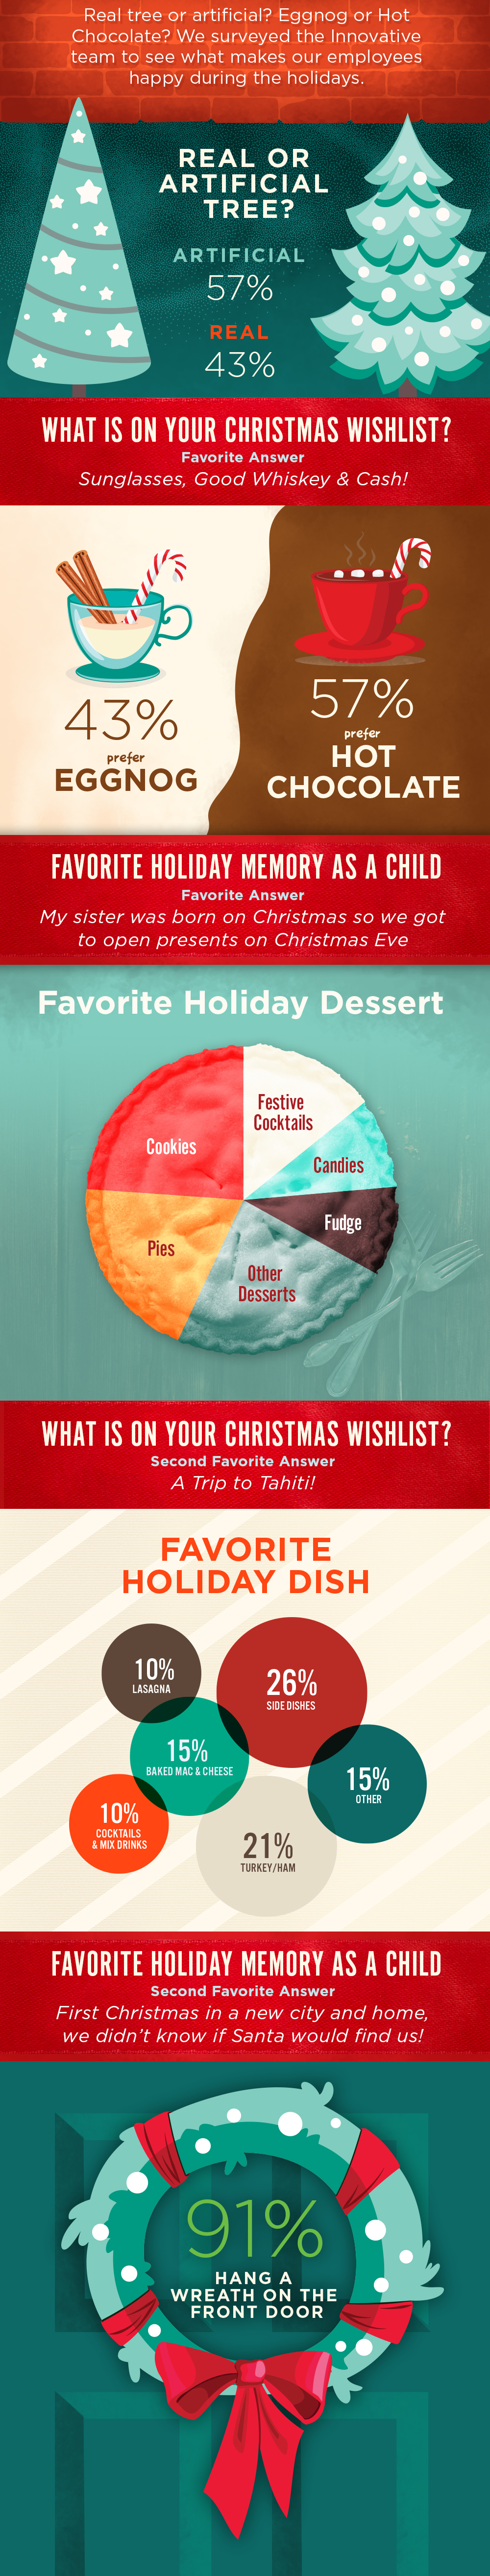 Innovative Advertising Christmas Survey Results Infographic